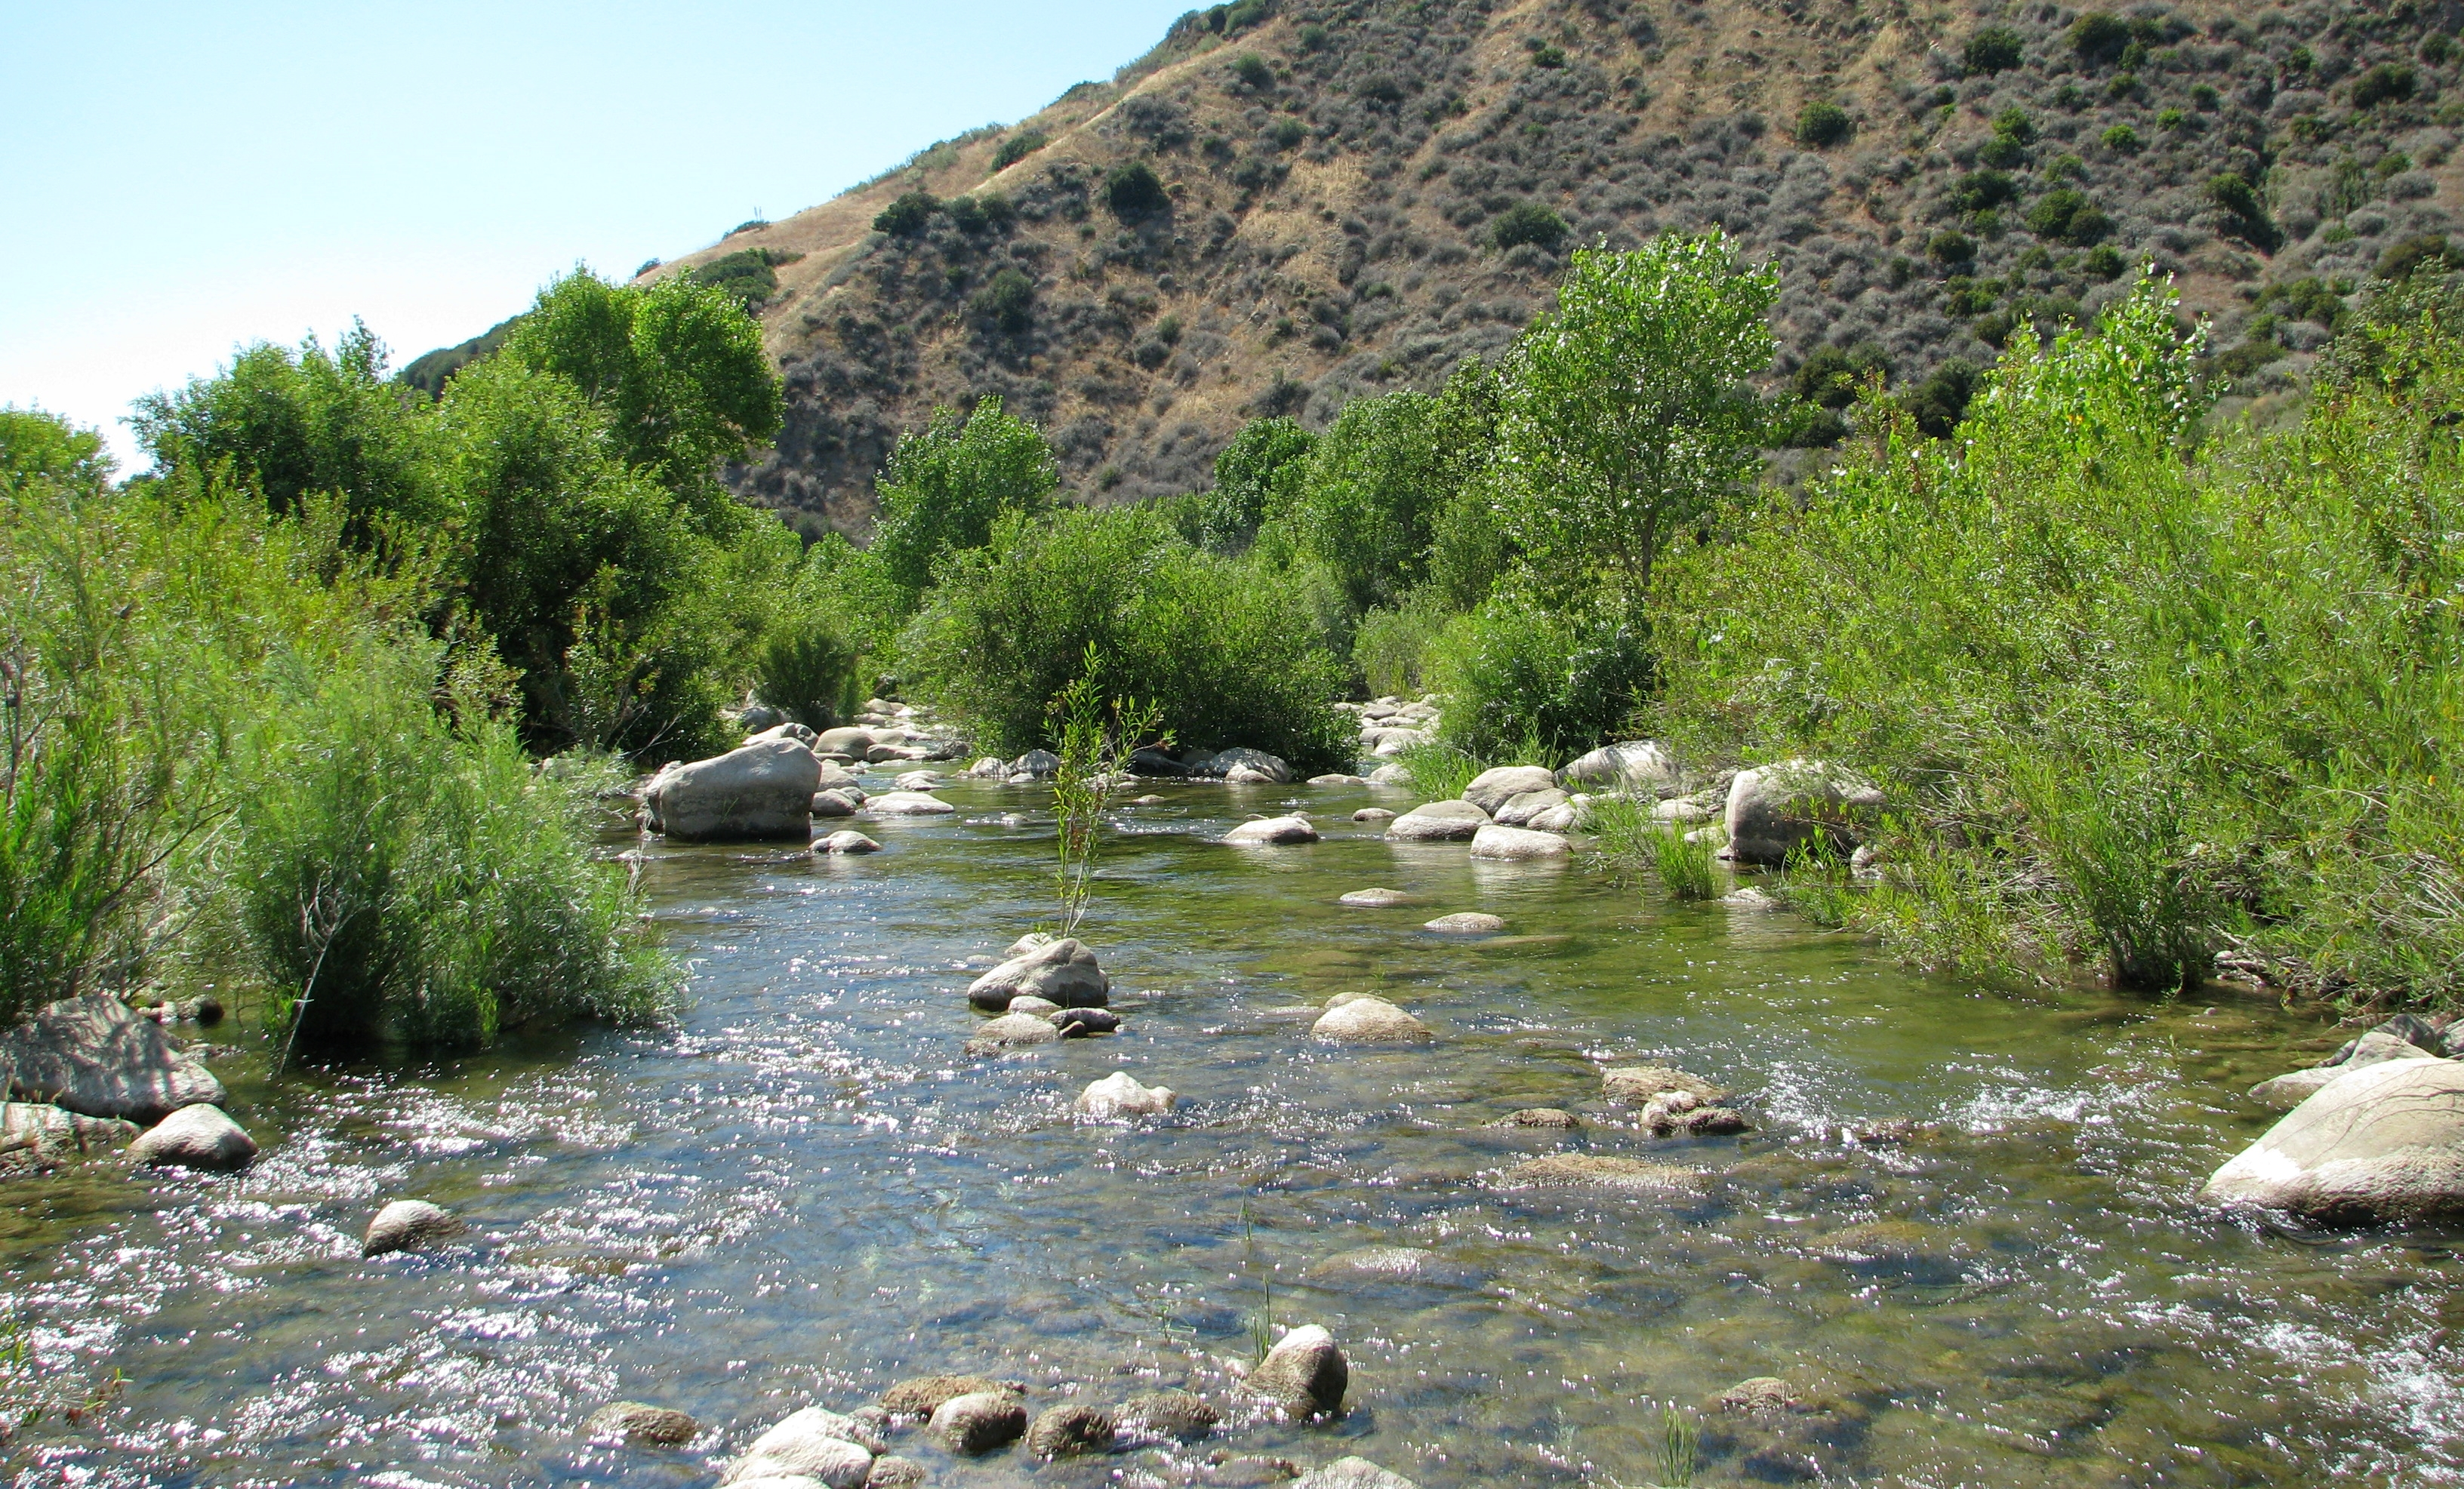 Day use and yearly pass fees will increase for some Los Padres National Forest sites starting Nov. 1.